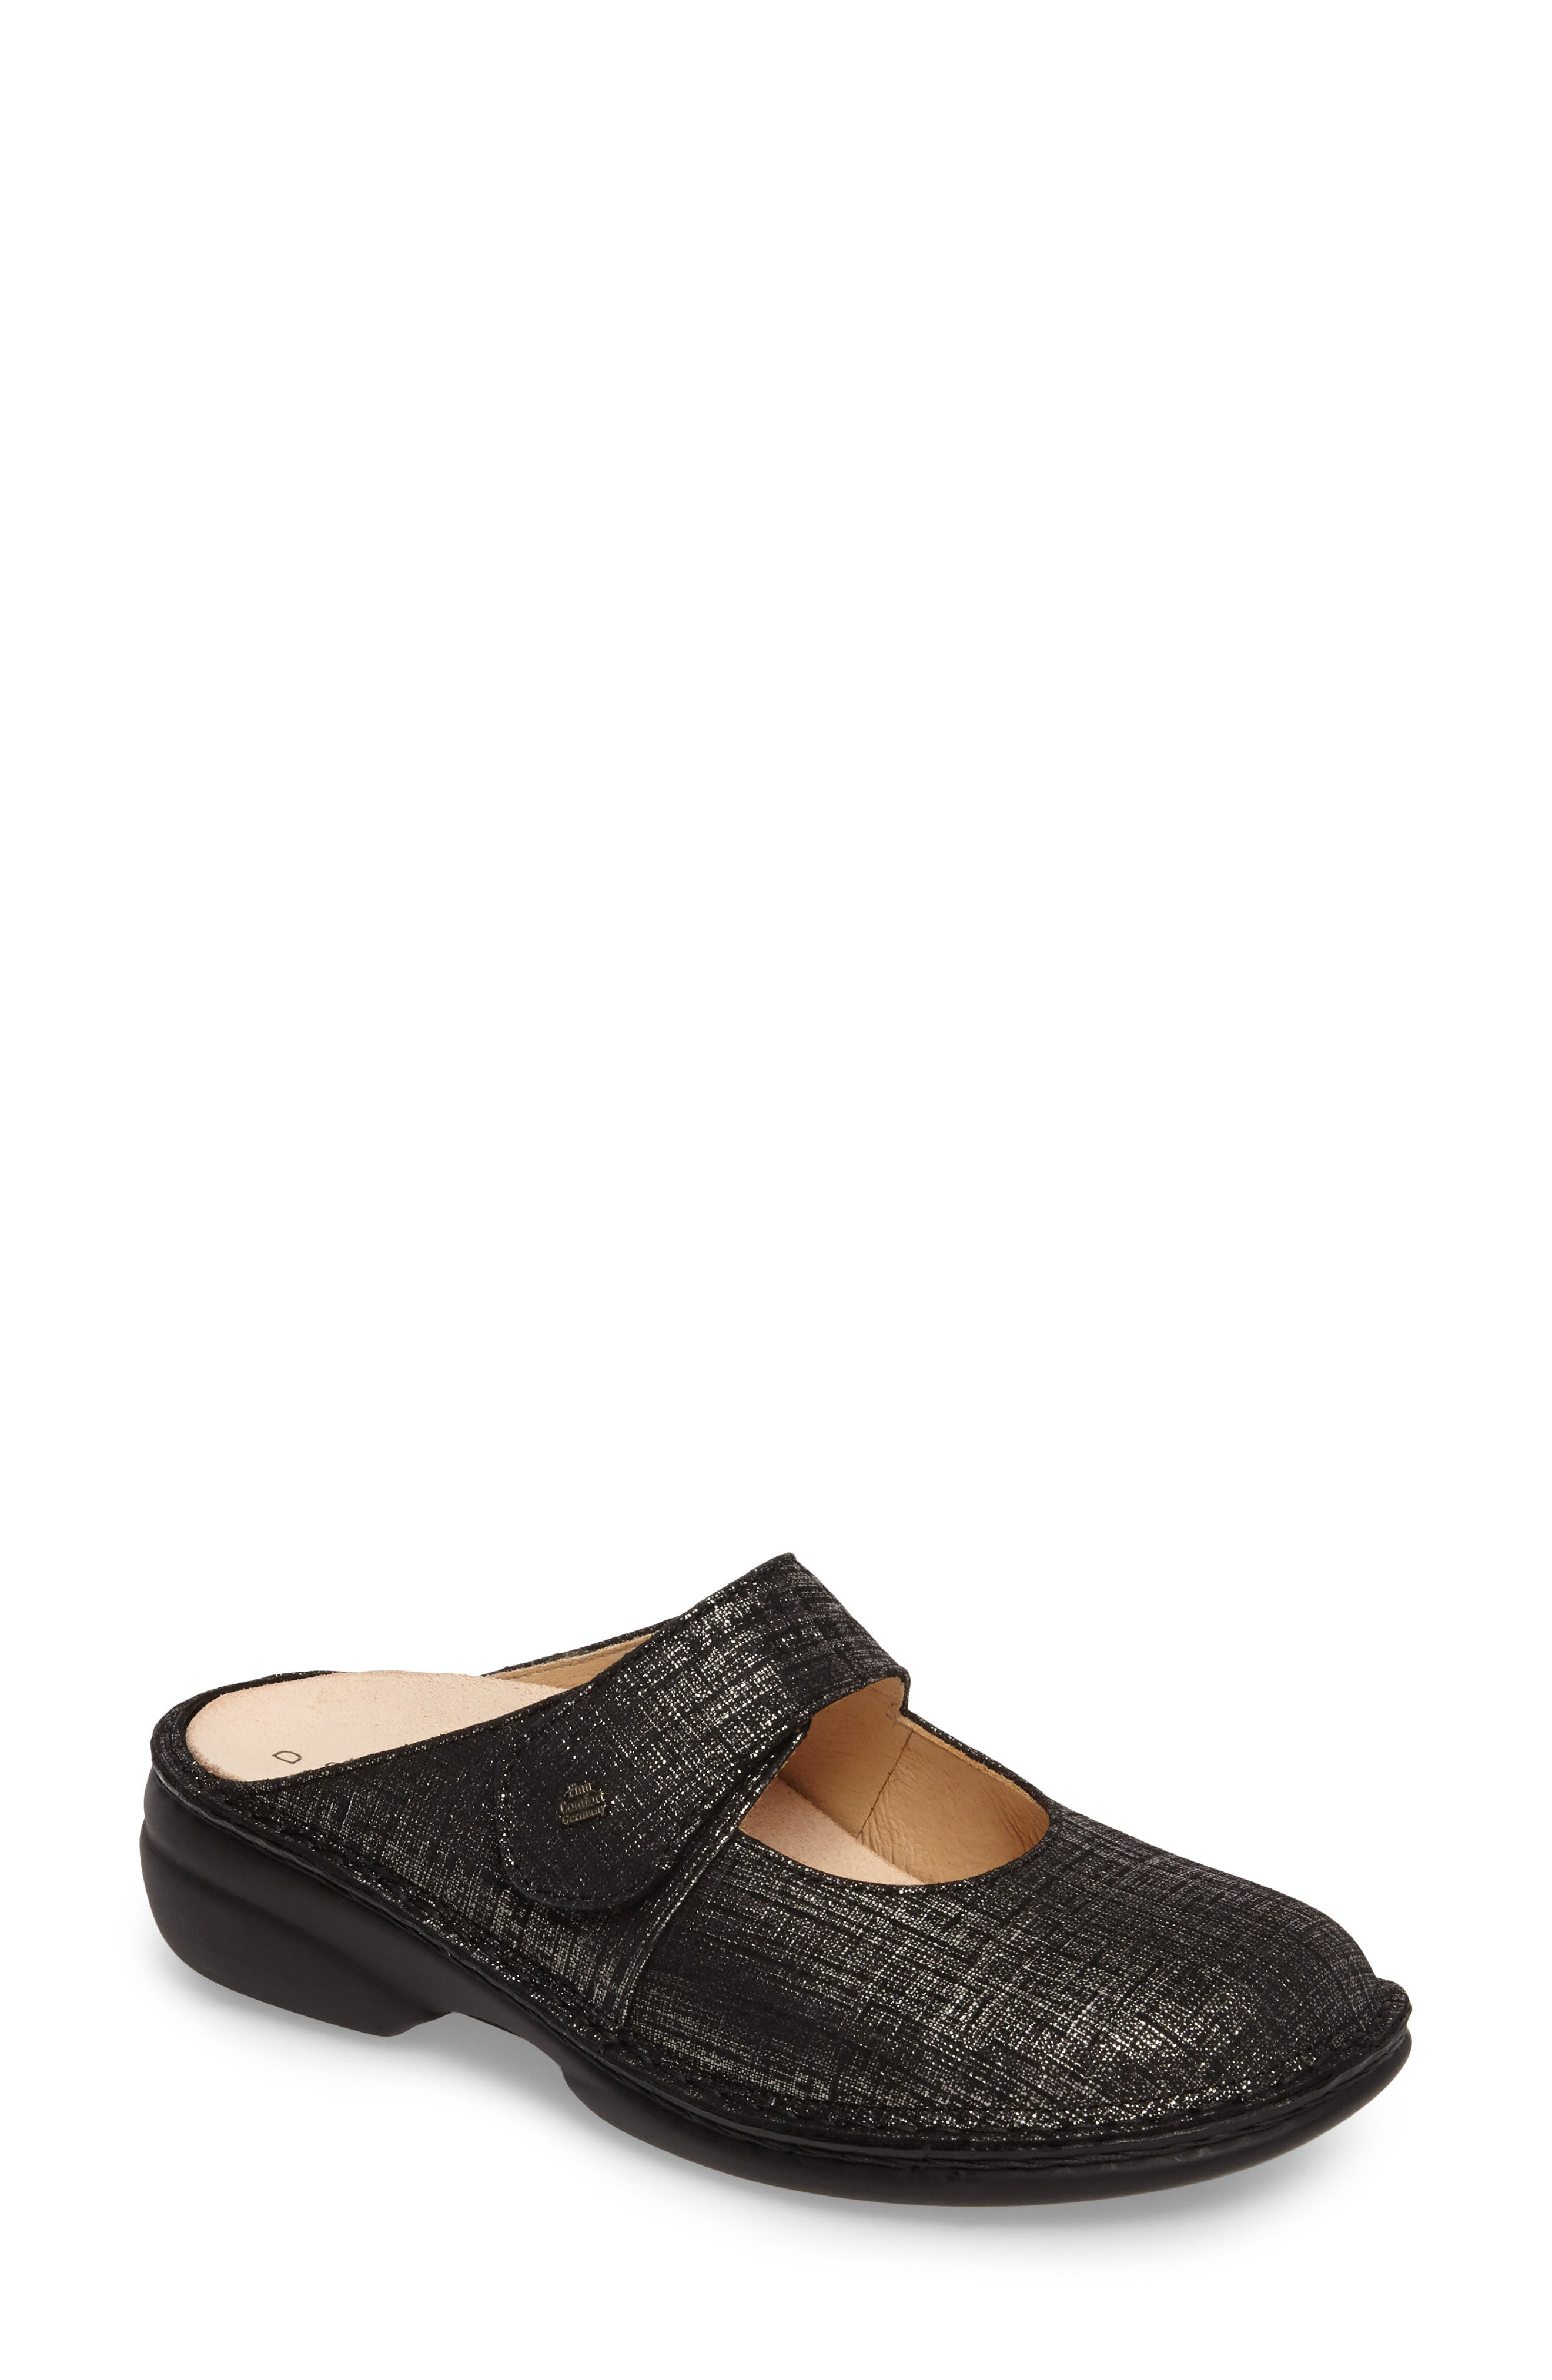 'Stanford' Clog,                         Main,                         color, 030